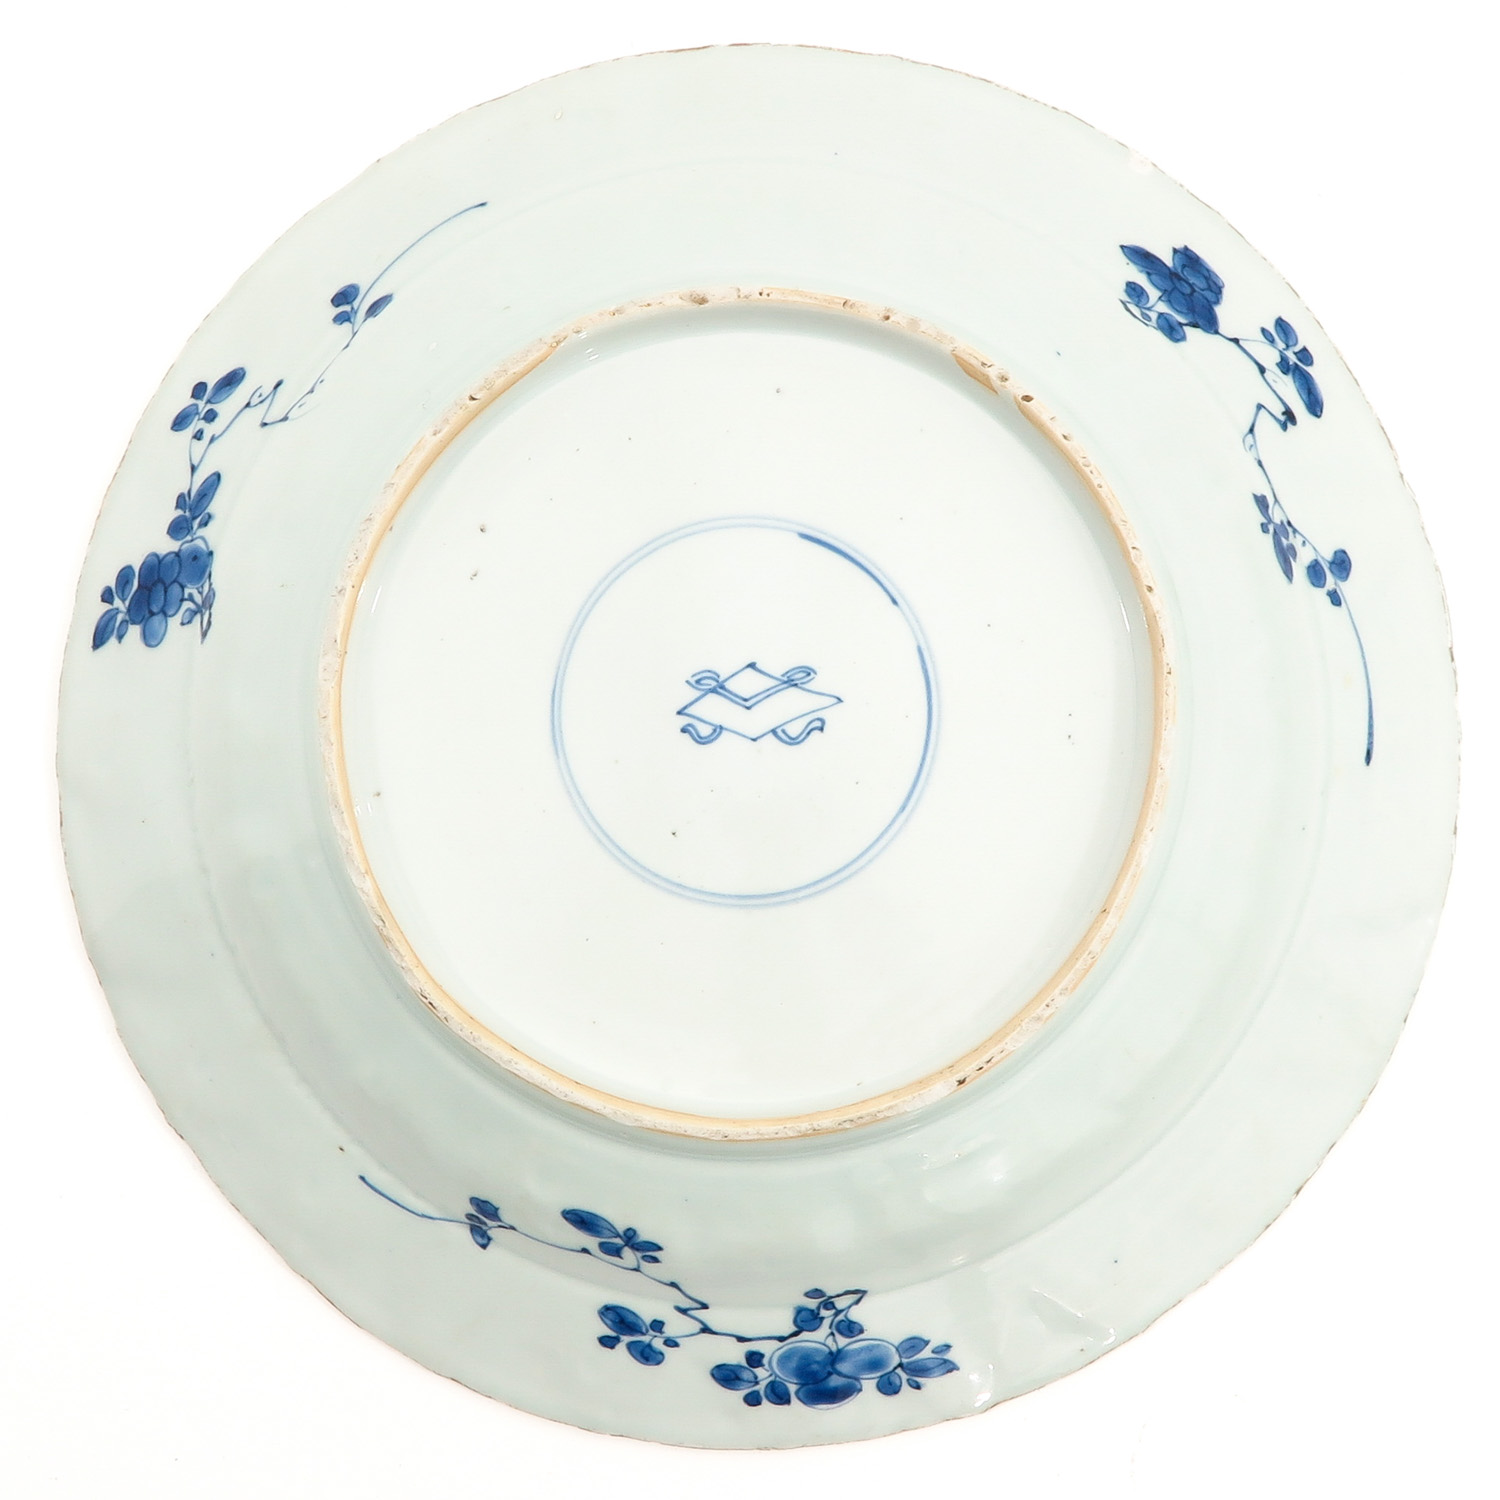 A Blue and White Charger - Image 2 of 8